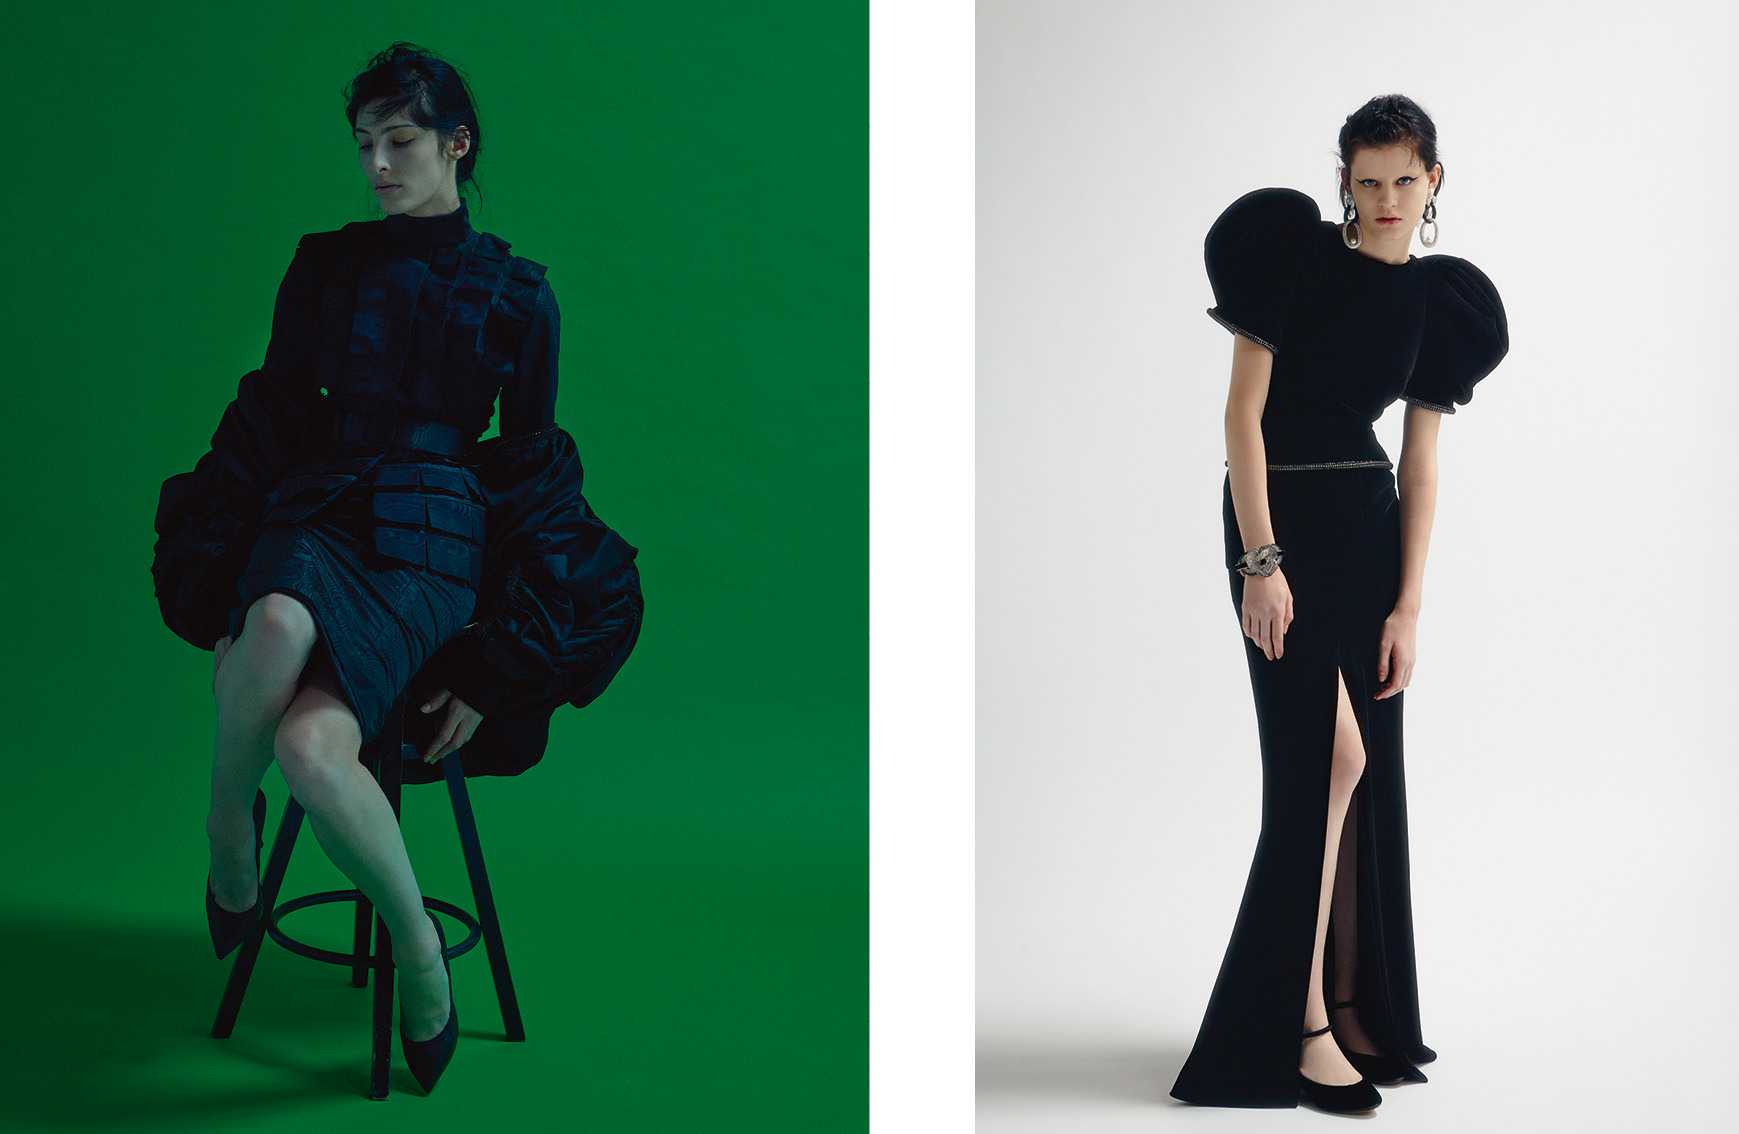 Left : Taffeta jacket and dress, Ziberline and satin bomber, belt and heels, GAULTIER PARIS. Right : silk-velvet ensemble with balloon sleeves and cristal details, earrings, bracelet and heels, GIORGIO ARMANI PRIVÉ.